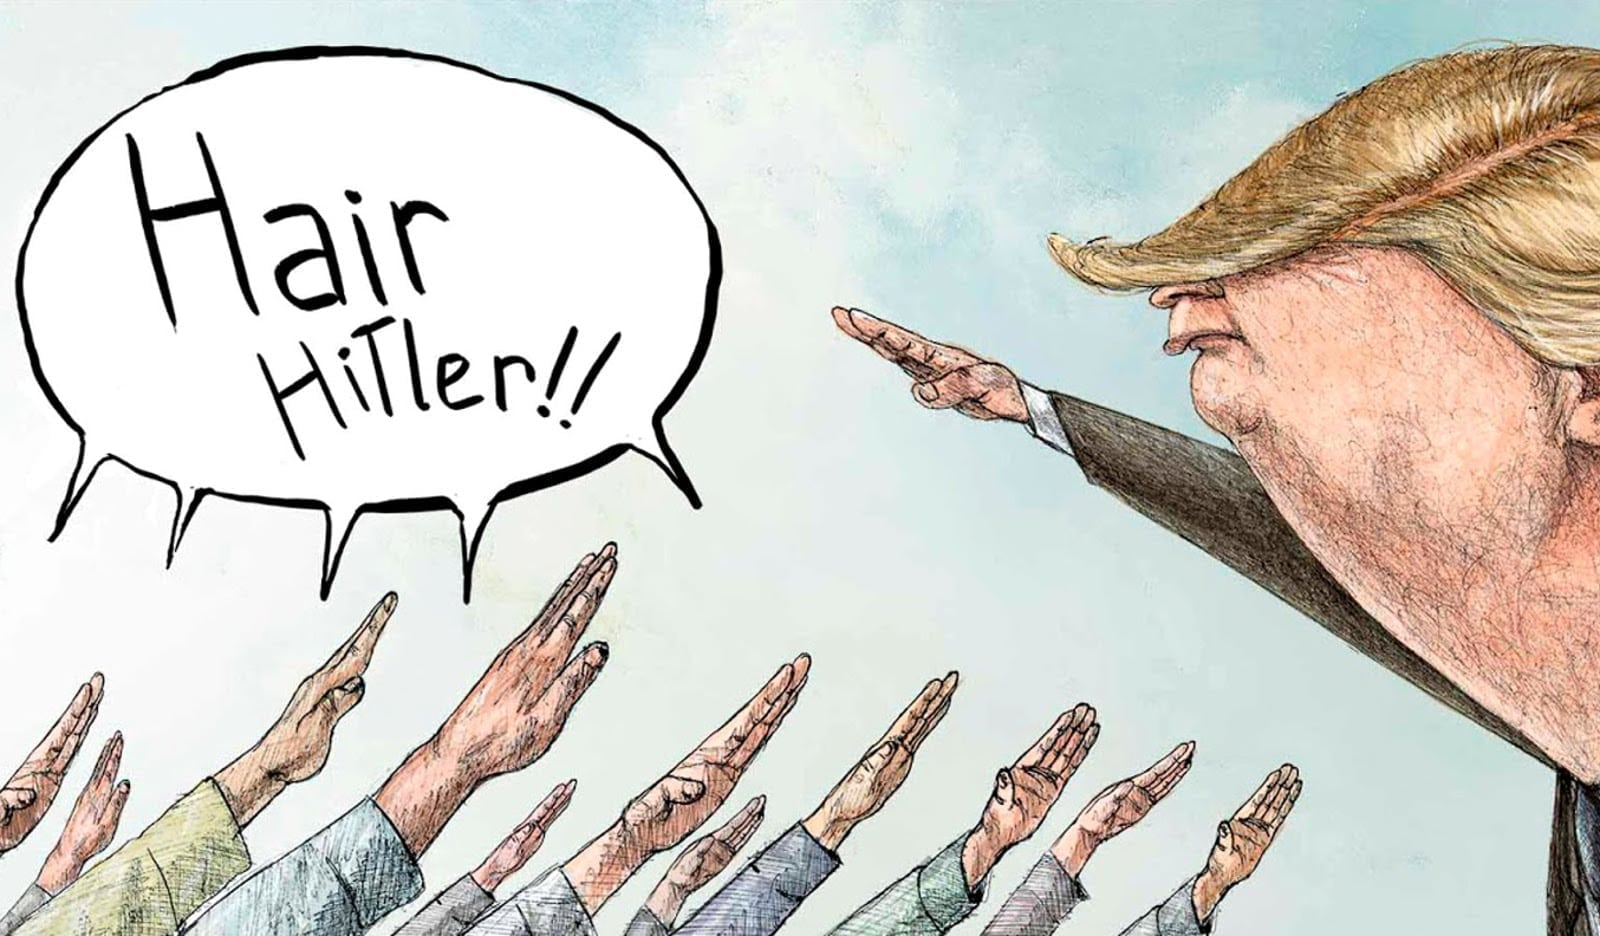 Trump HairHitler header copy 1